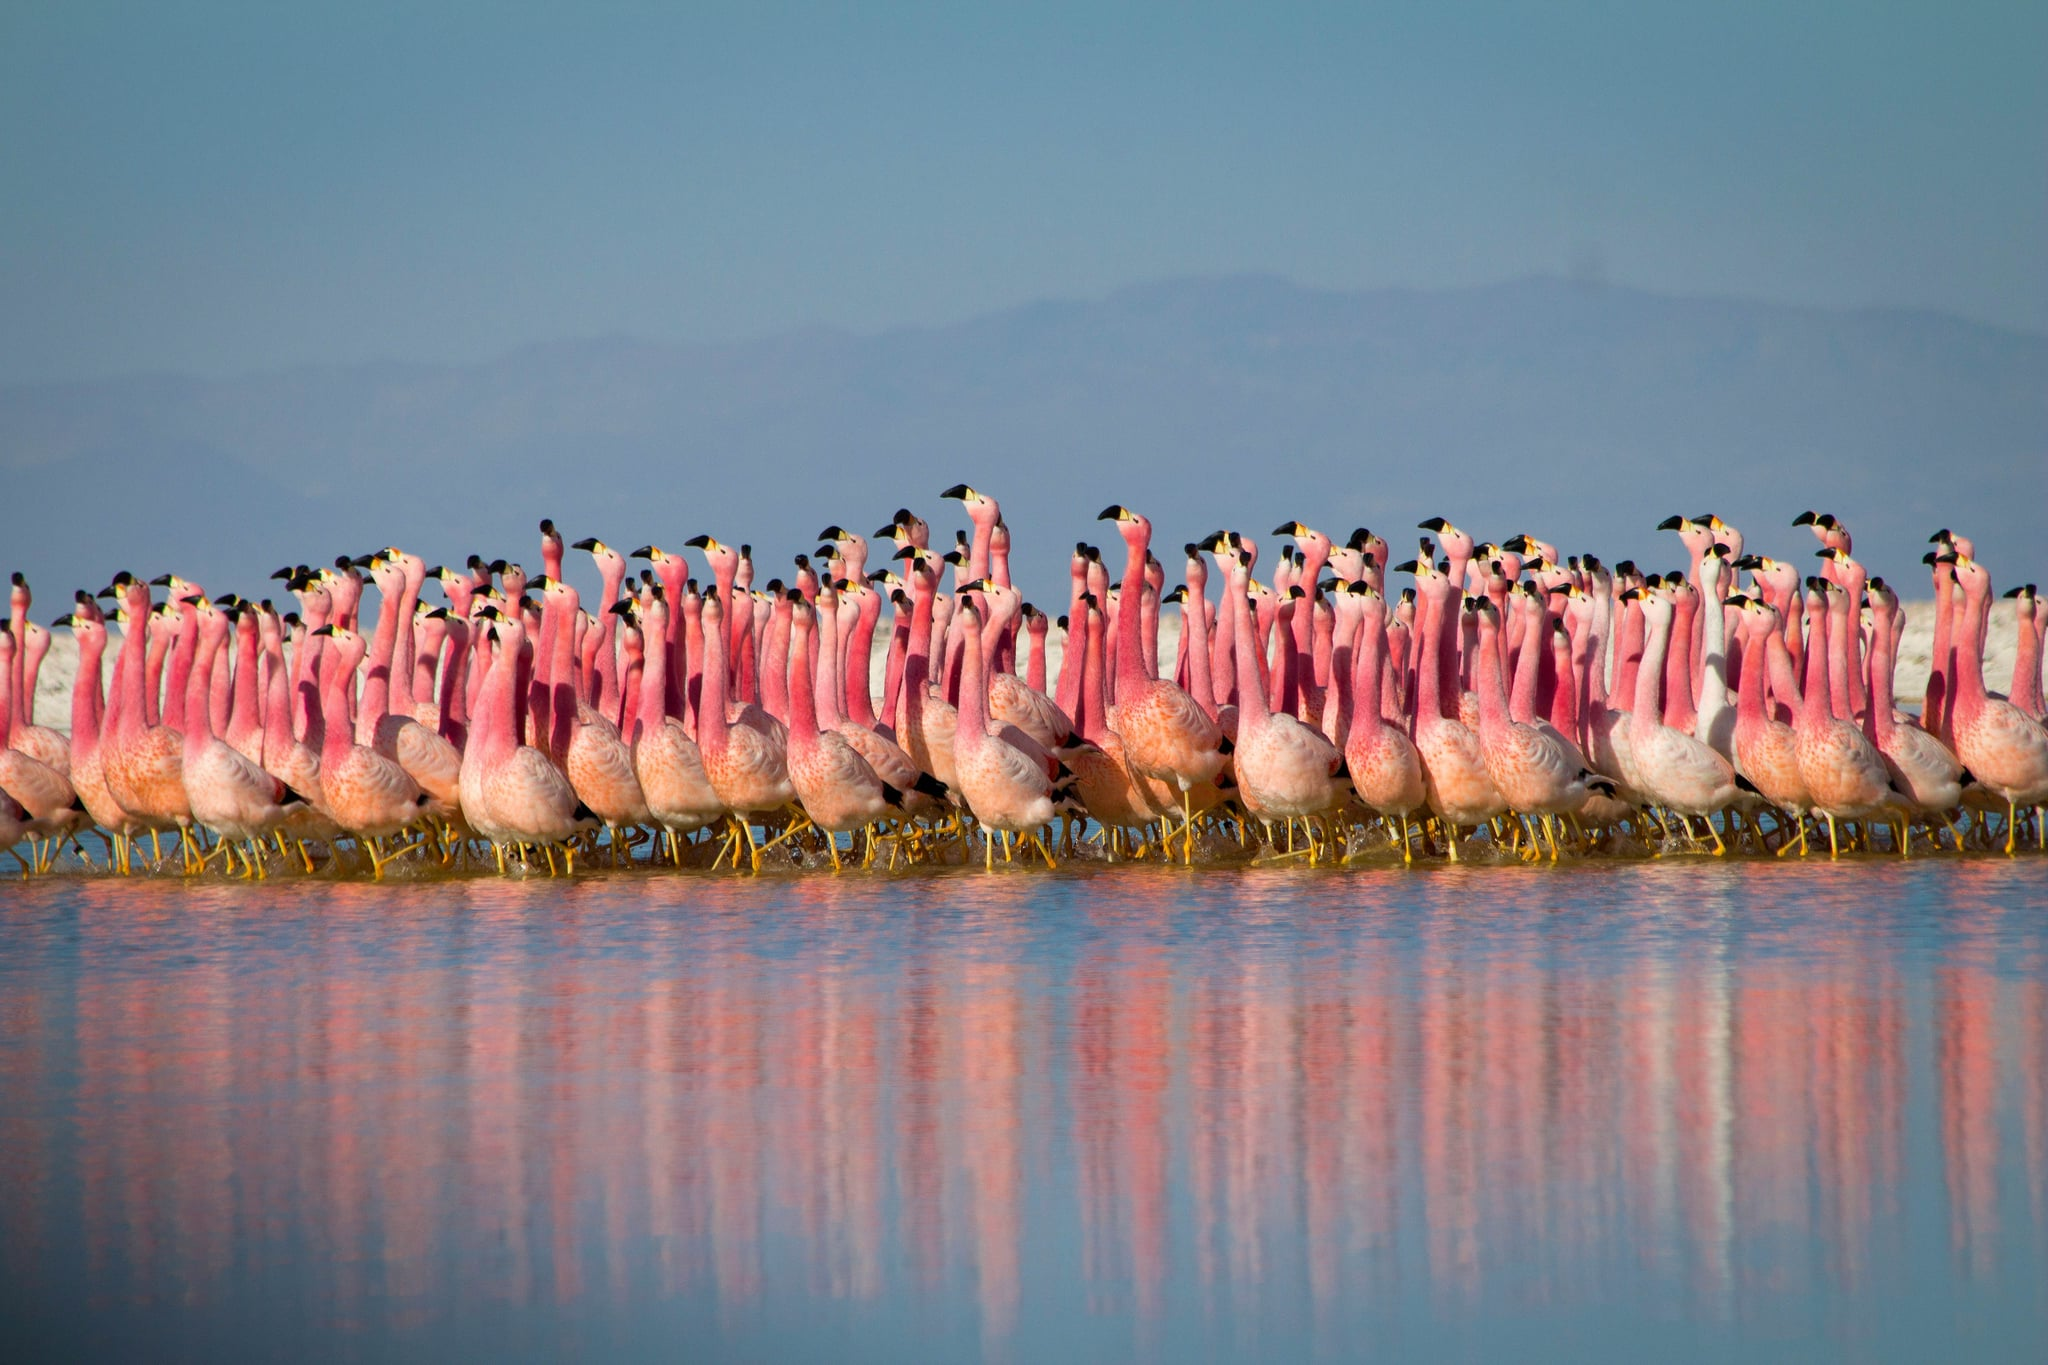 WARNING: Embargoed for publication until 00:00:01 on 25/07/2020 - Programme Name: Planet Earth A Celebration - TX: n/a - Episode: Planet Earth A Celebration (No. n/a) - Picture Shows: A group of flamingos performs a courtship dance in a salt lake on the arid Altiplano region of the High Andes.   - (C) NHU - Photographer: NHU